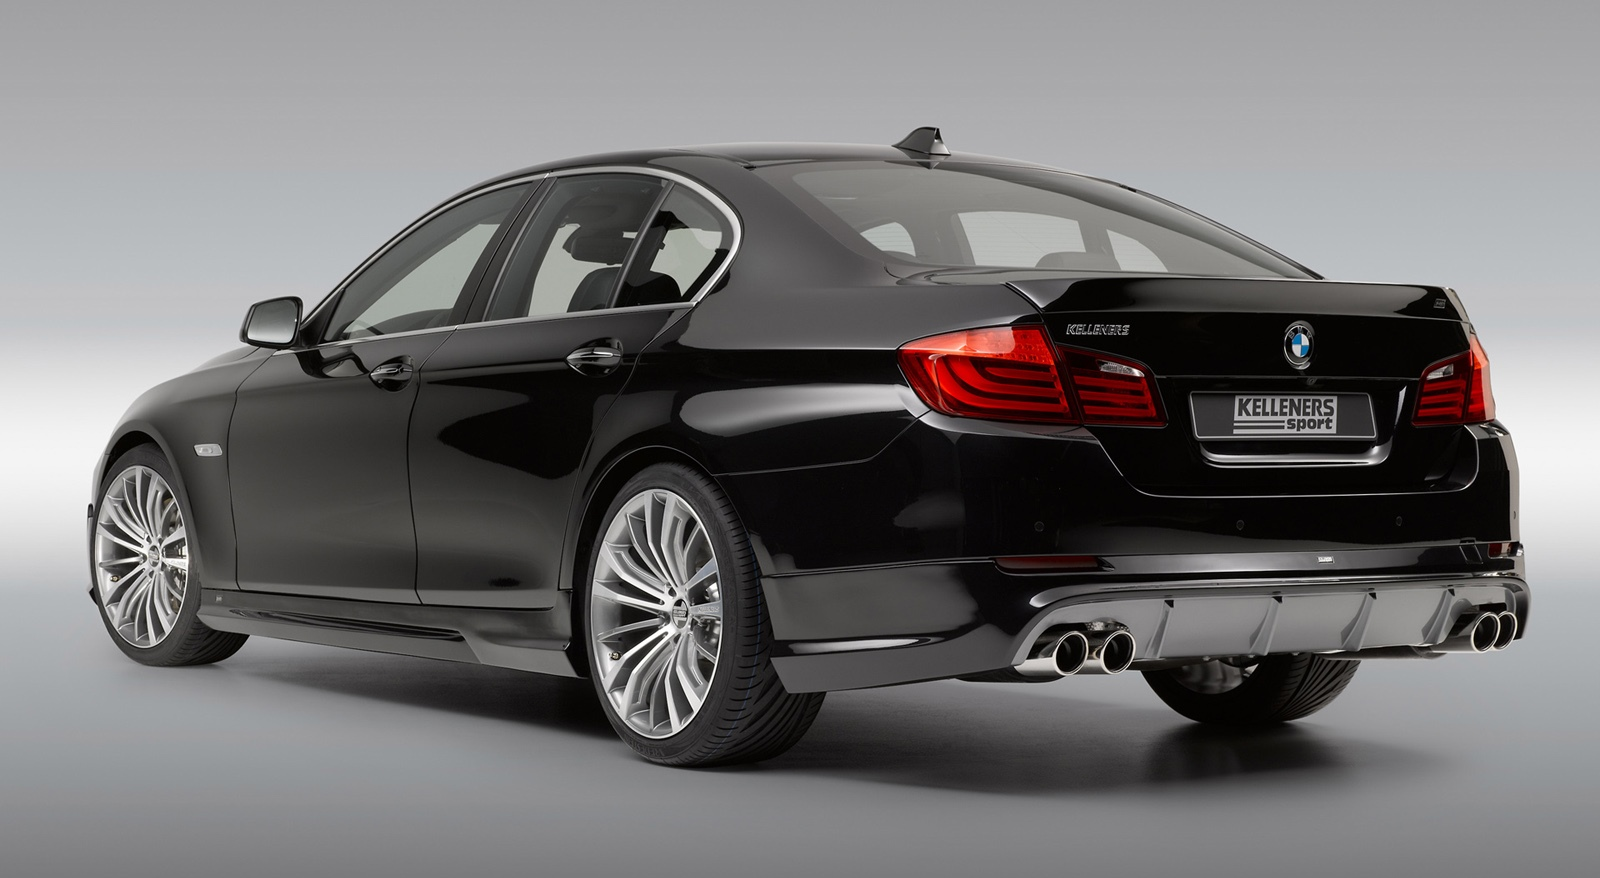 bmw 5 series 523i in pakistan 5 series bmw 5 series 523i price specs features and pakwheels. Black Bedroom Furniture Sets. Home Design Ideas